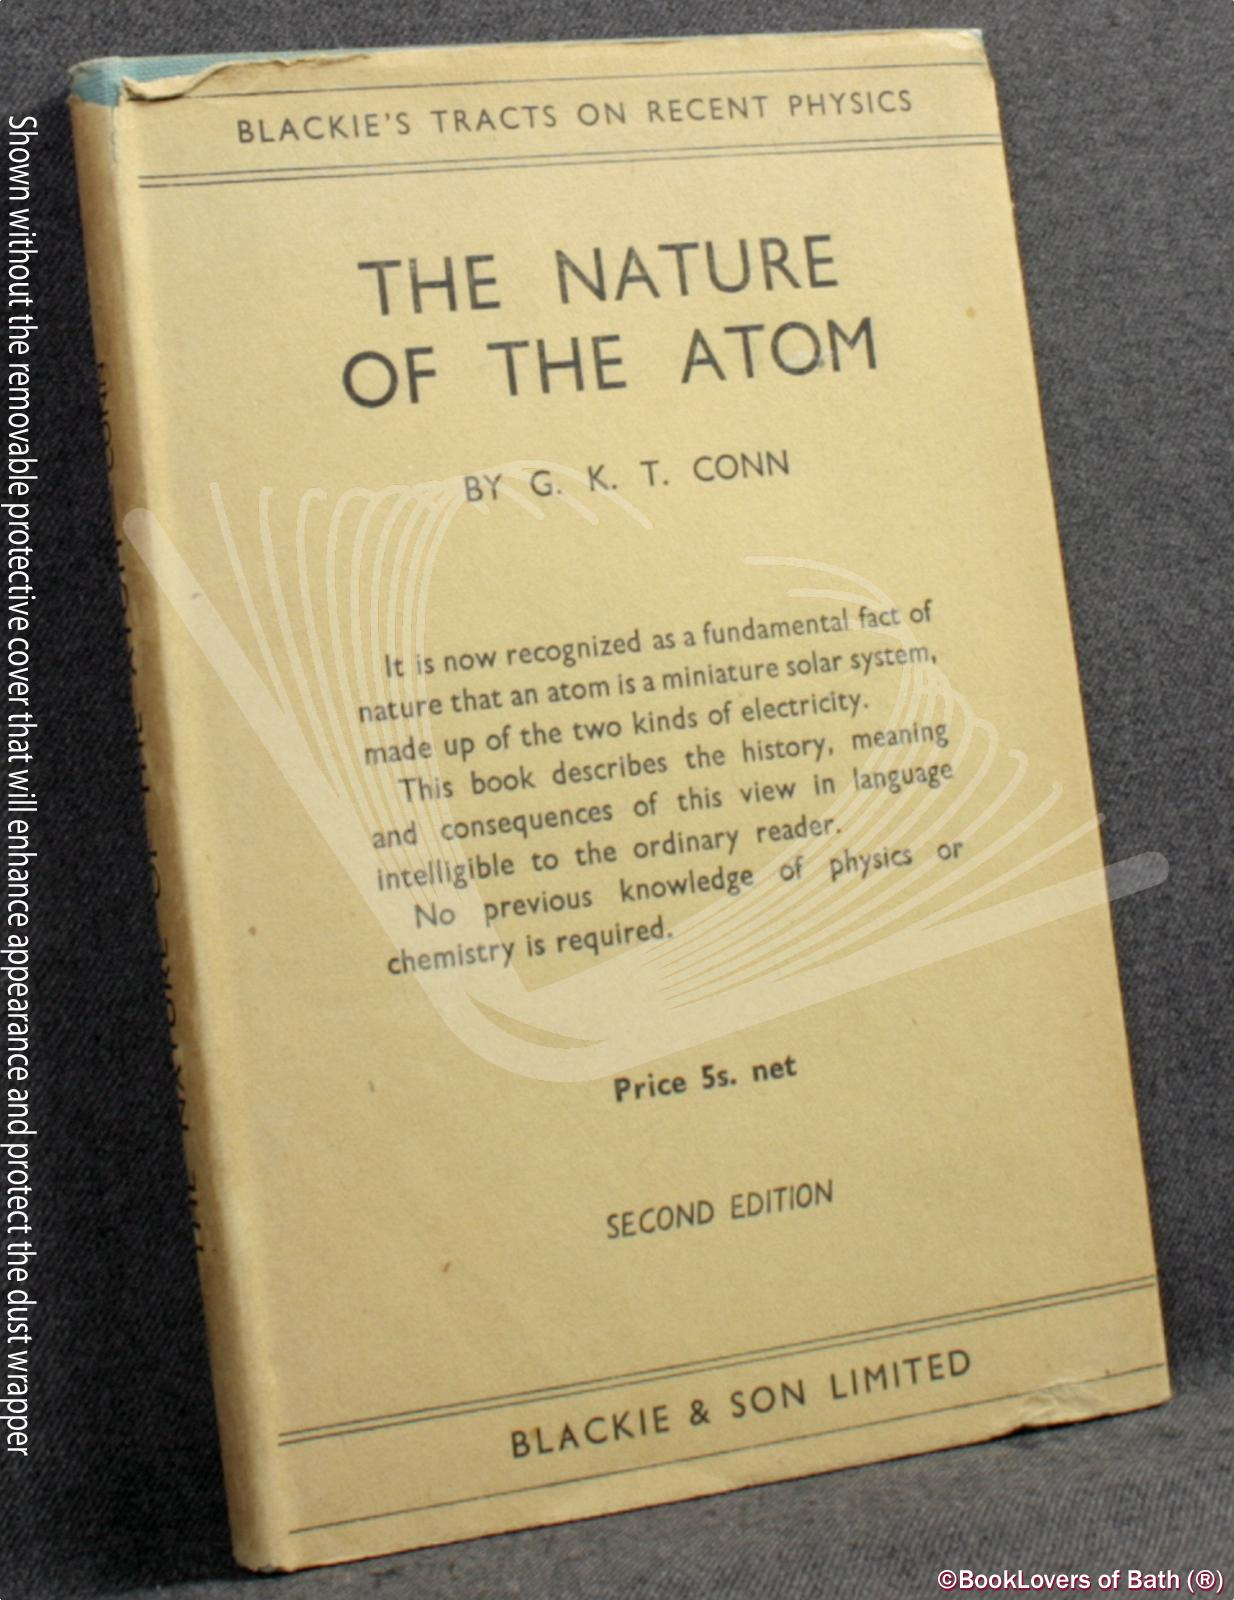 The Nature of the Atom - G. K. T. [George Keith Thurburn] Conn